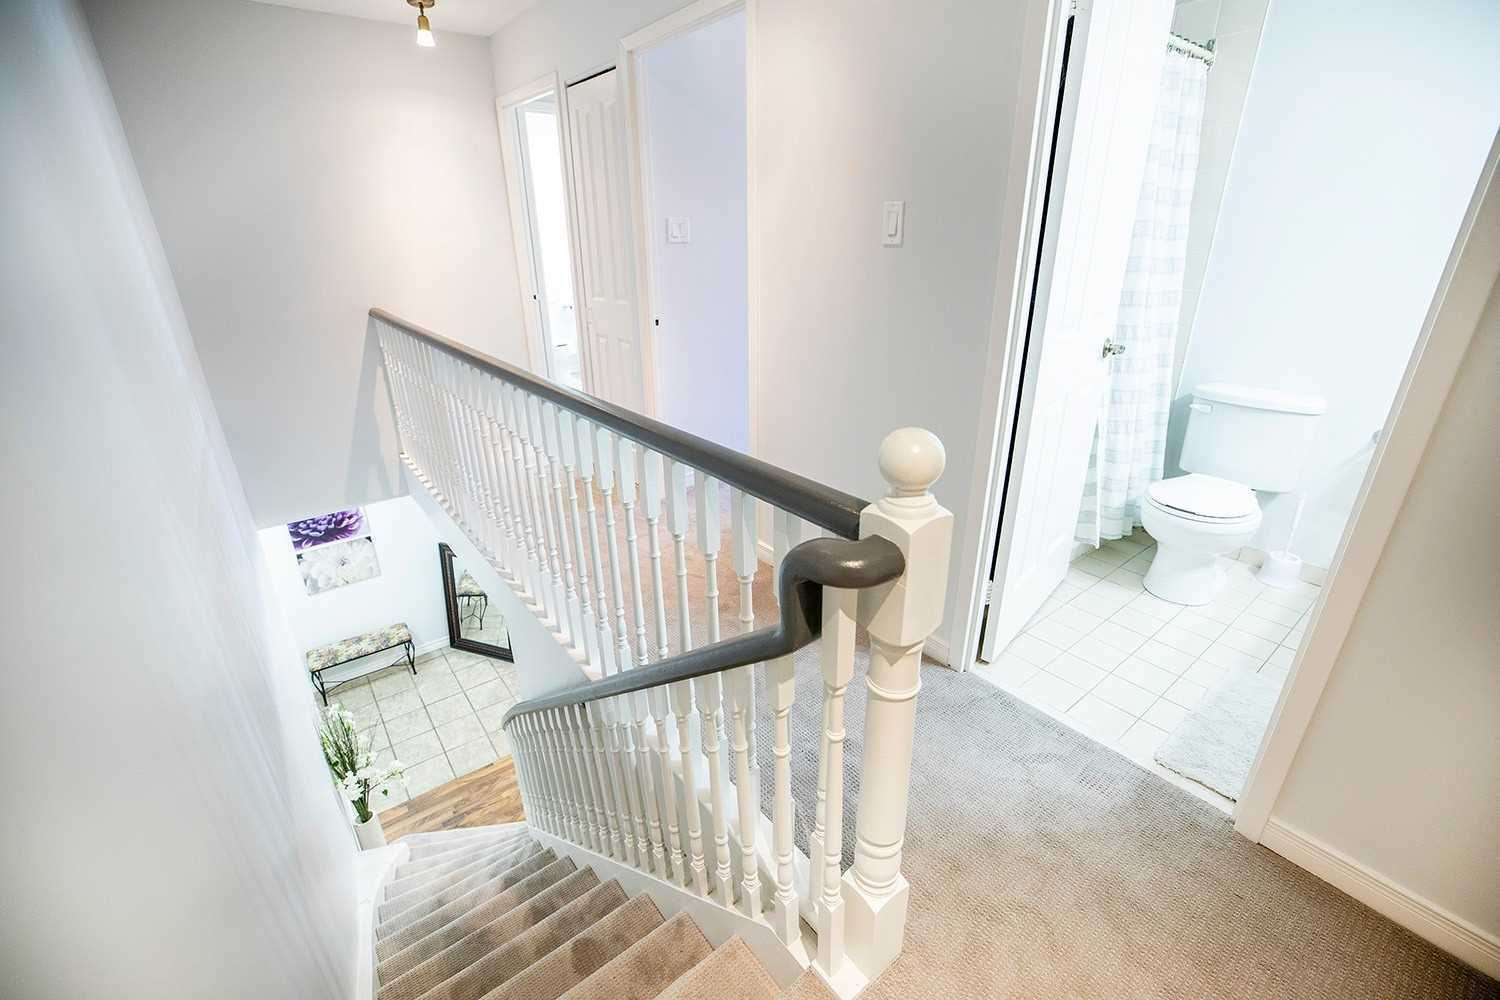 Image 2 of 20 showing inside of 2 Bedroom Condo Apt 2-Storey for Sale at 25 Cumberland Lane Unit# 112, Ajax L1S7K1